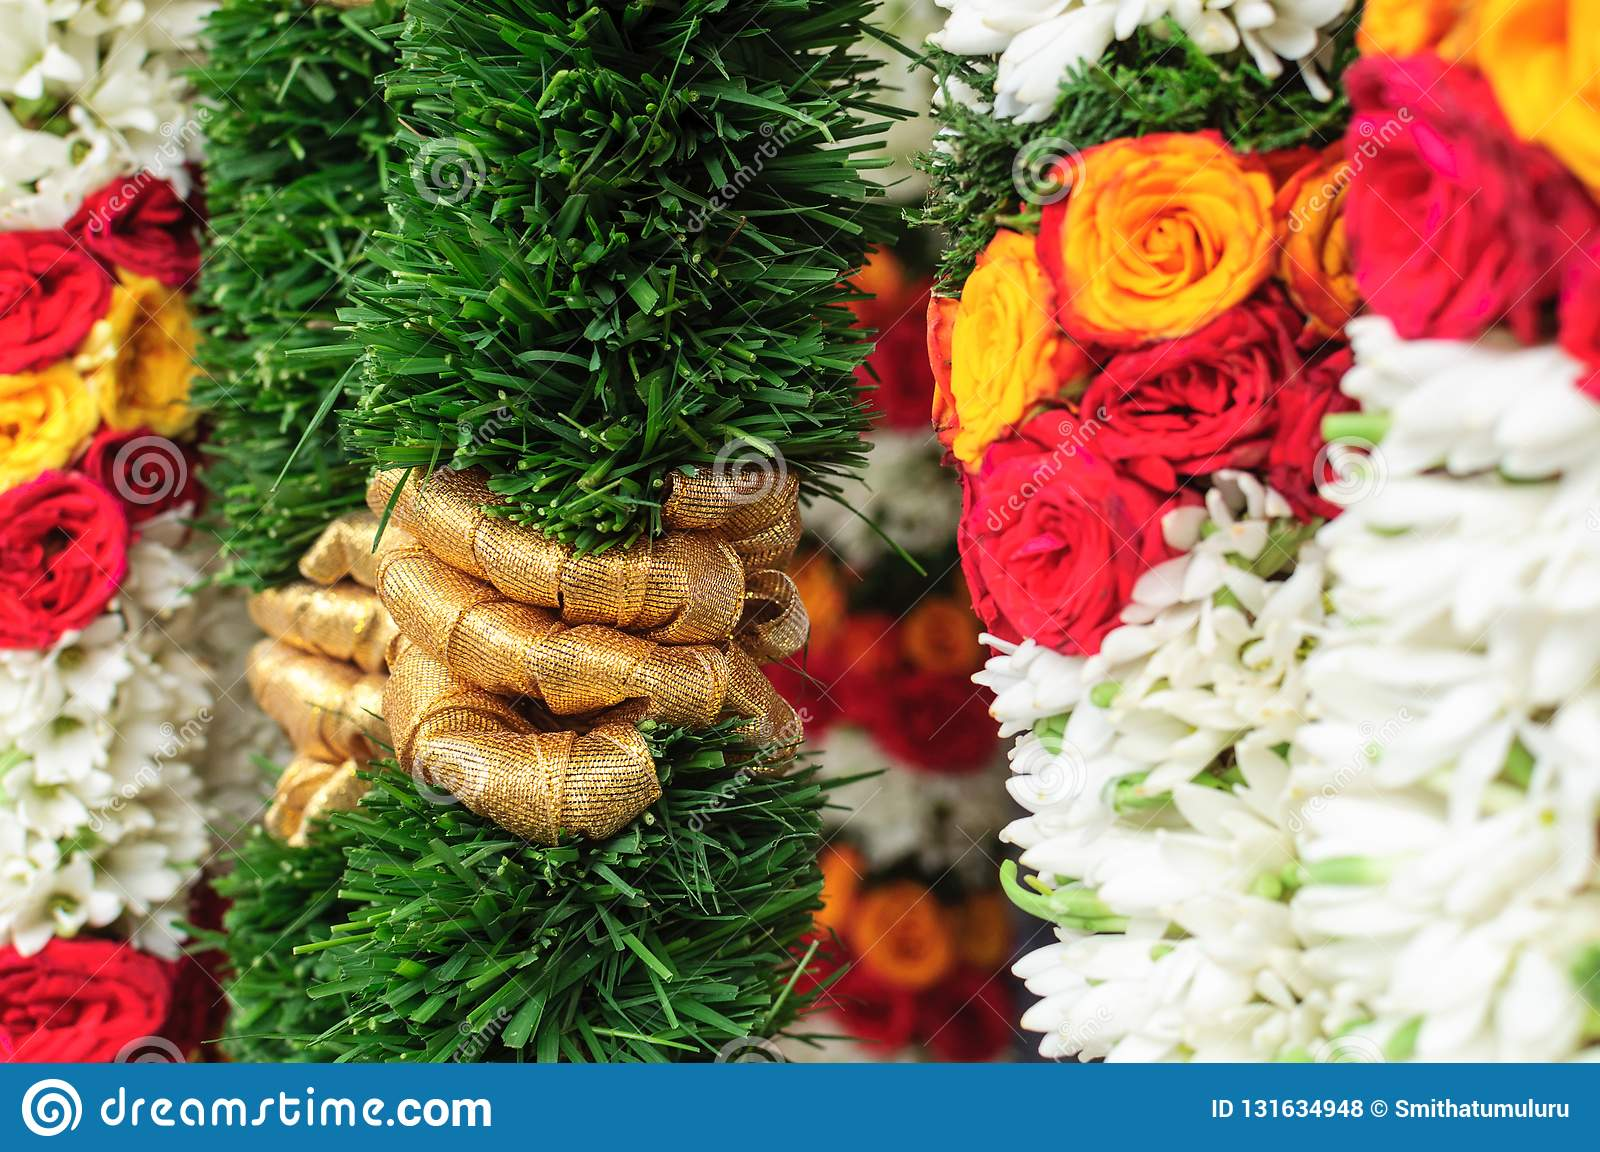 Garlands Of Roses Stock Photo Image Of Leaves Hanging 131634948